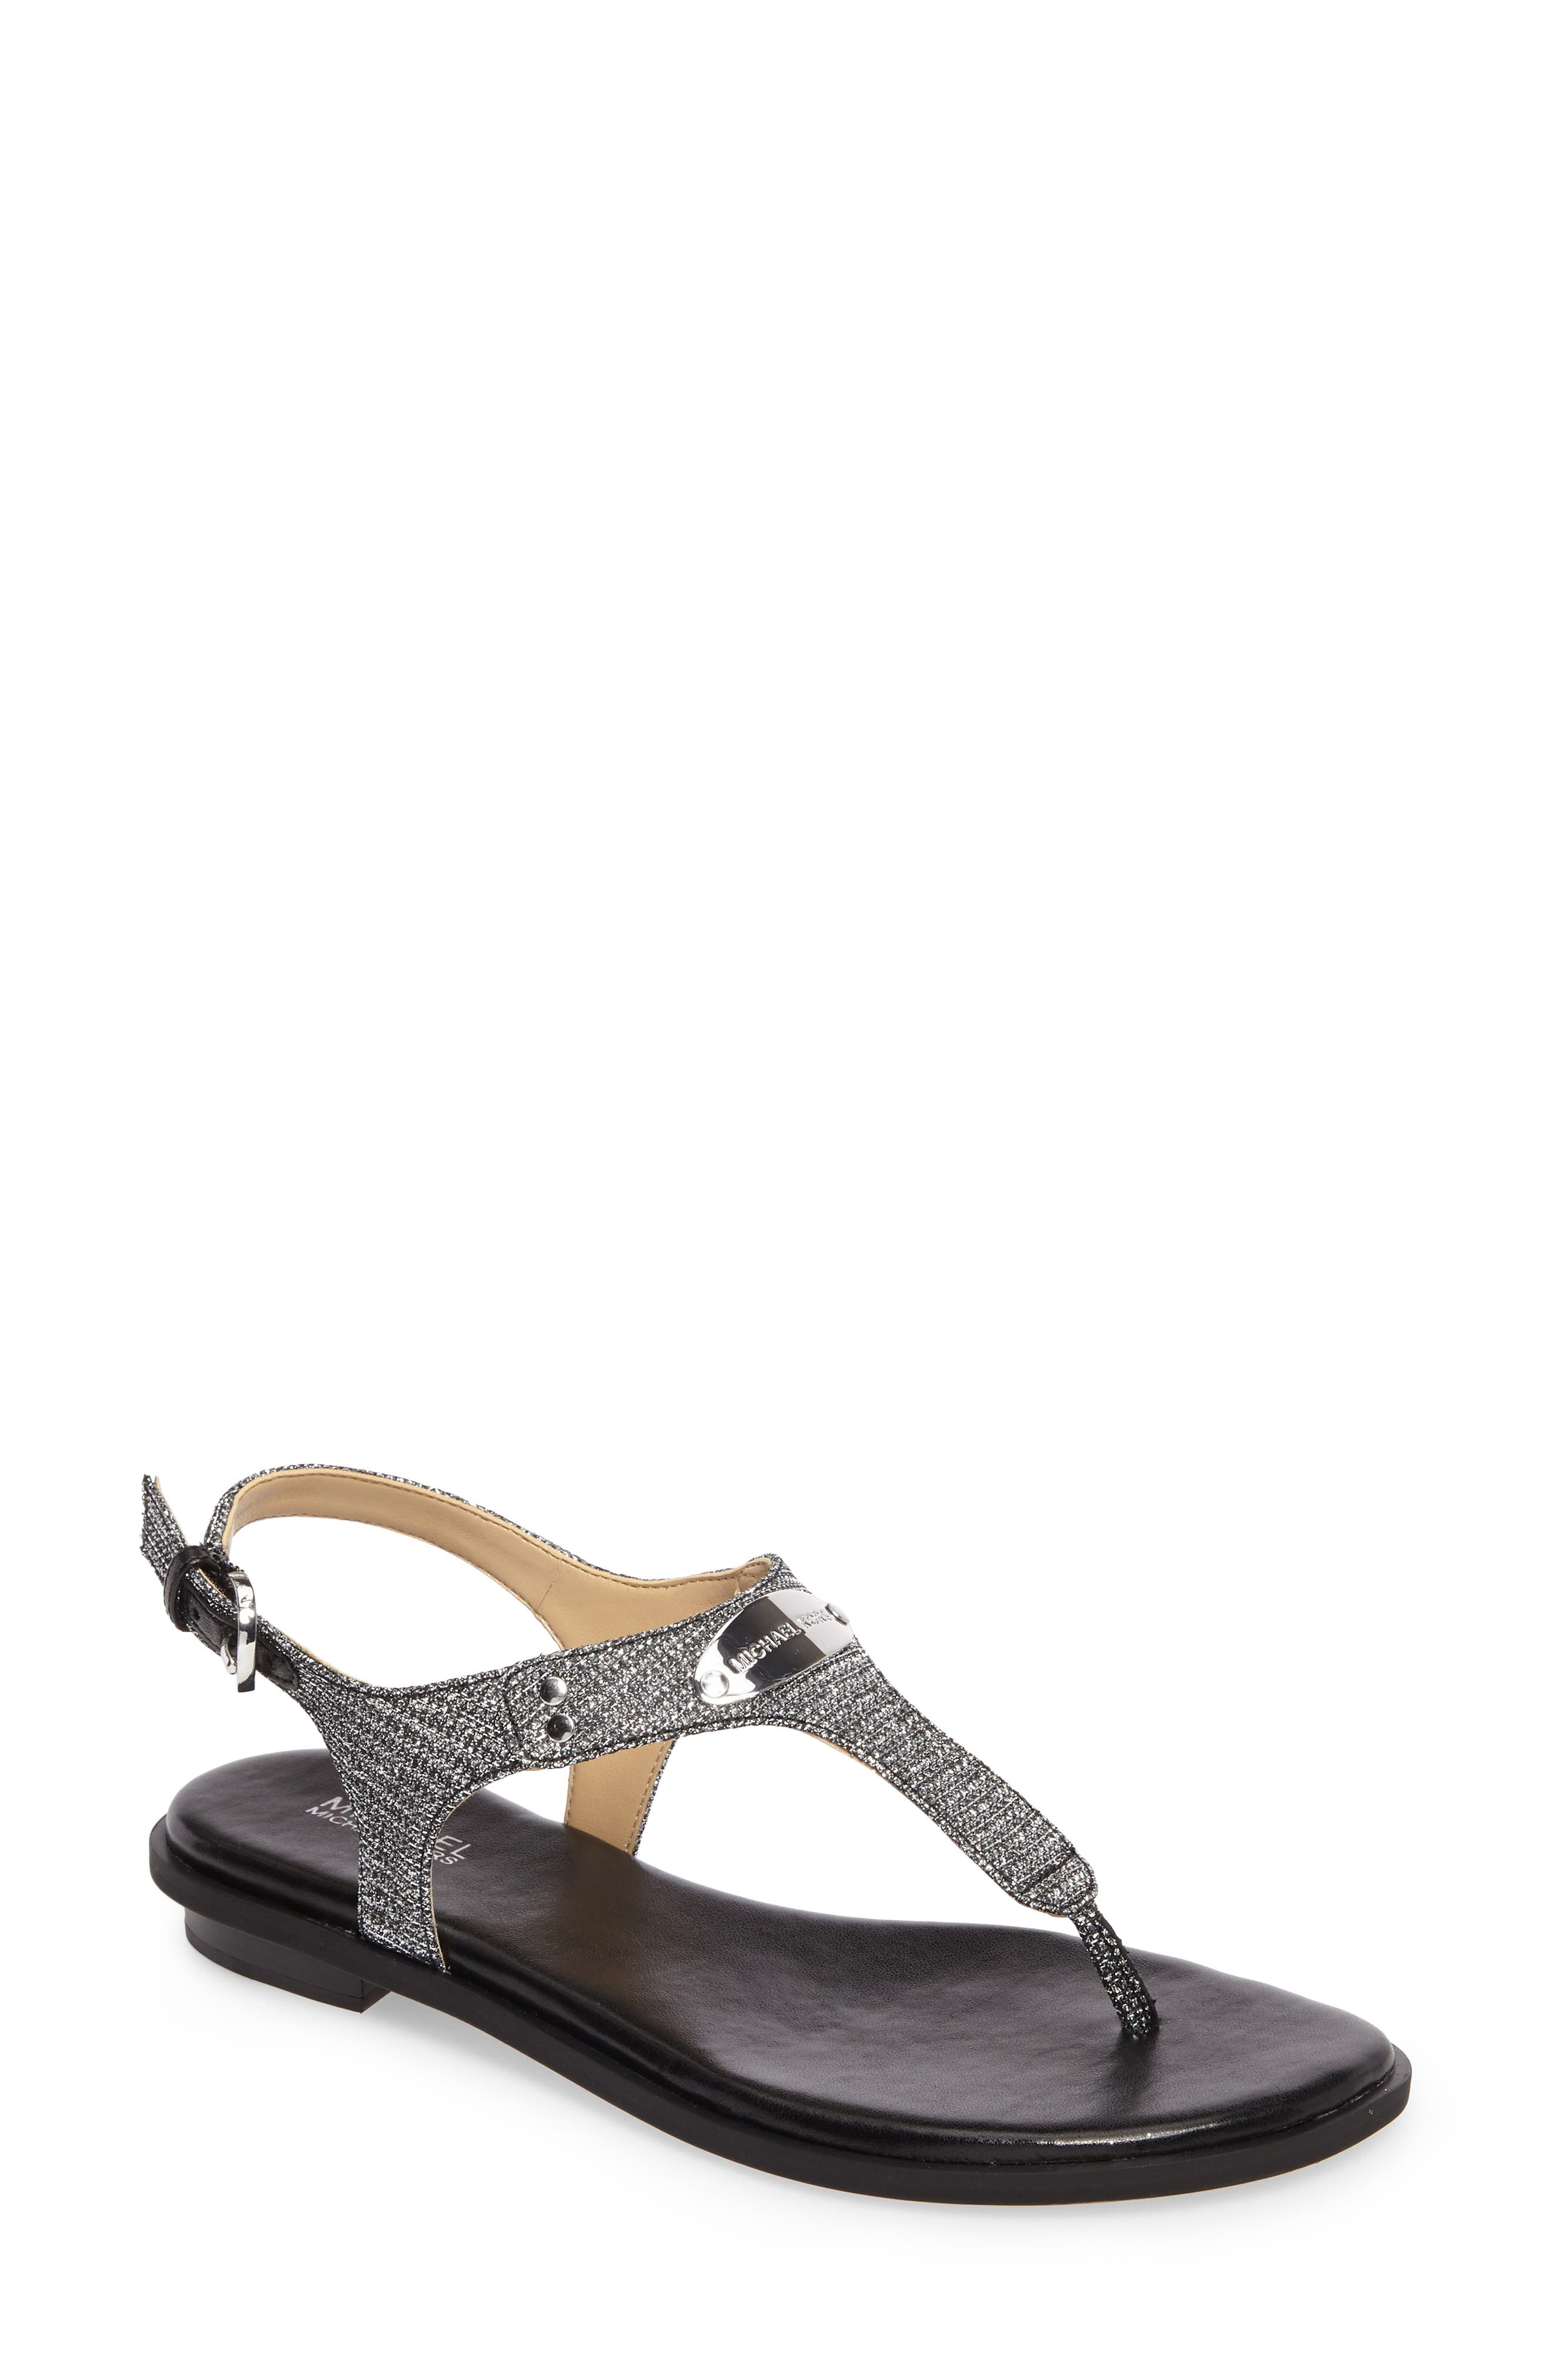 'Plate' Thong Sandal, Main, color, 040